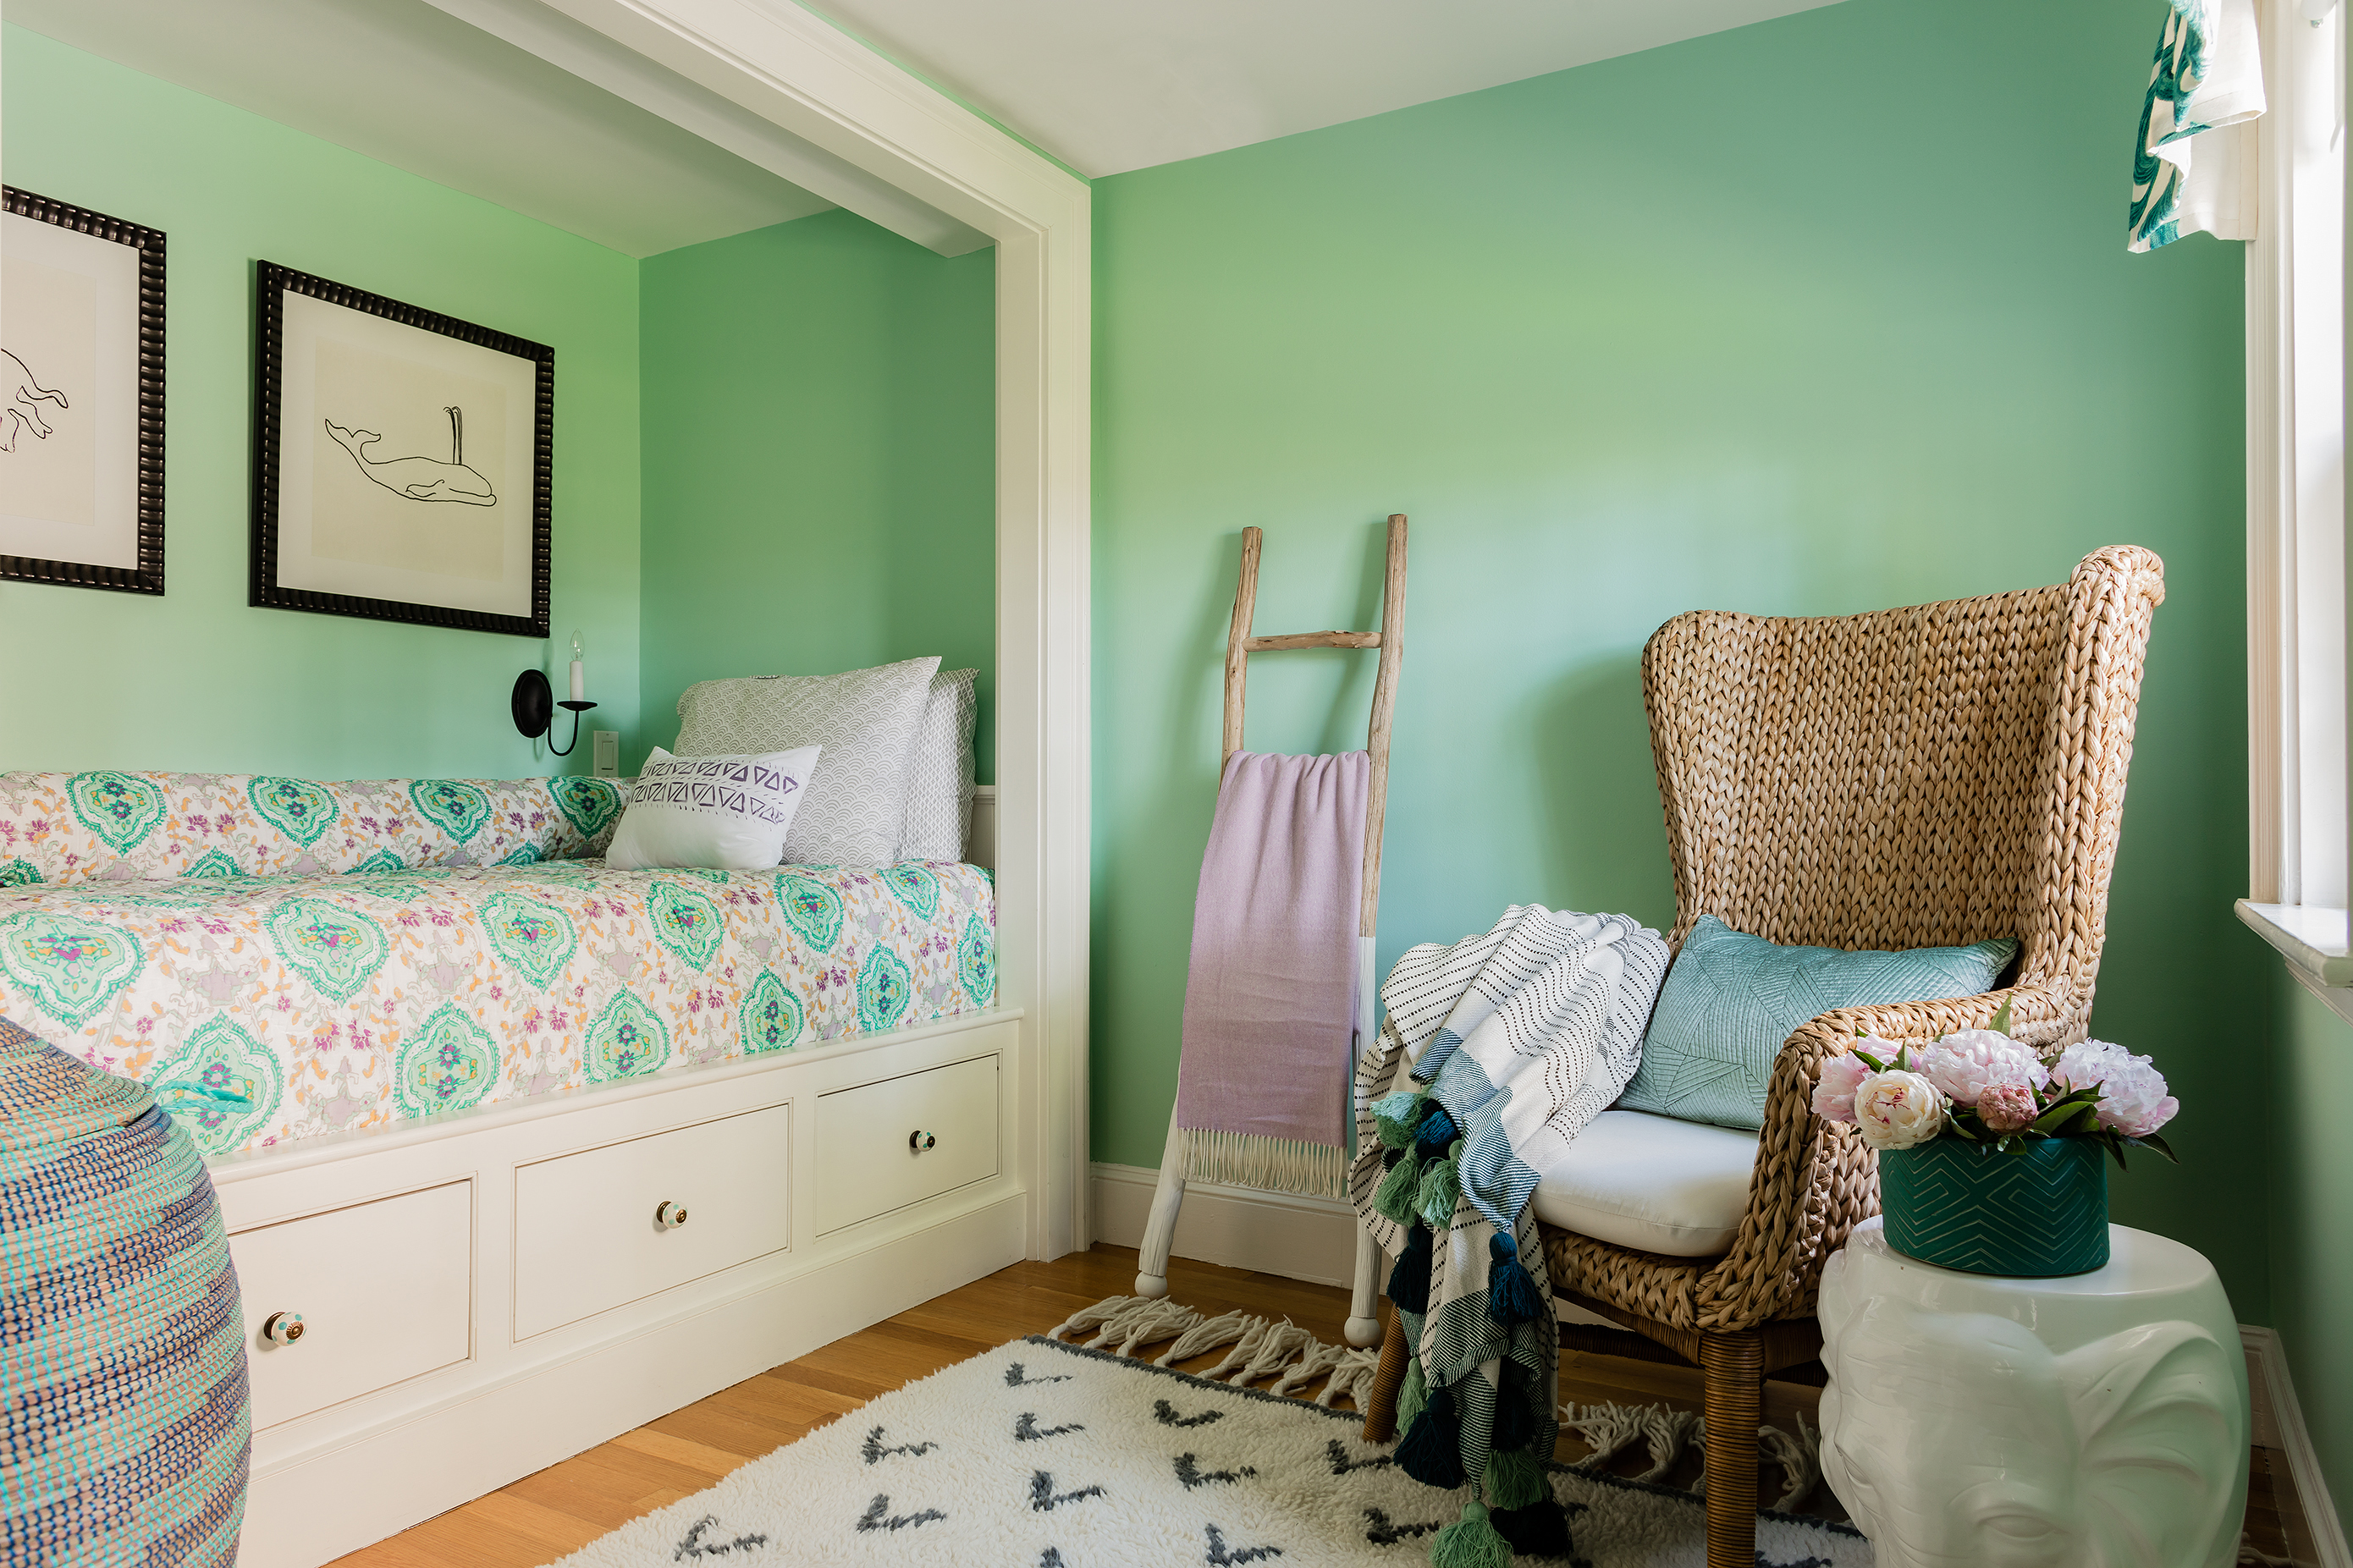 Designing a girl's bedroom that she'll love as she grows